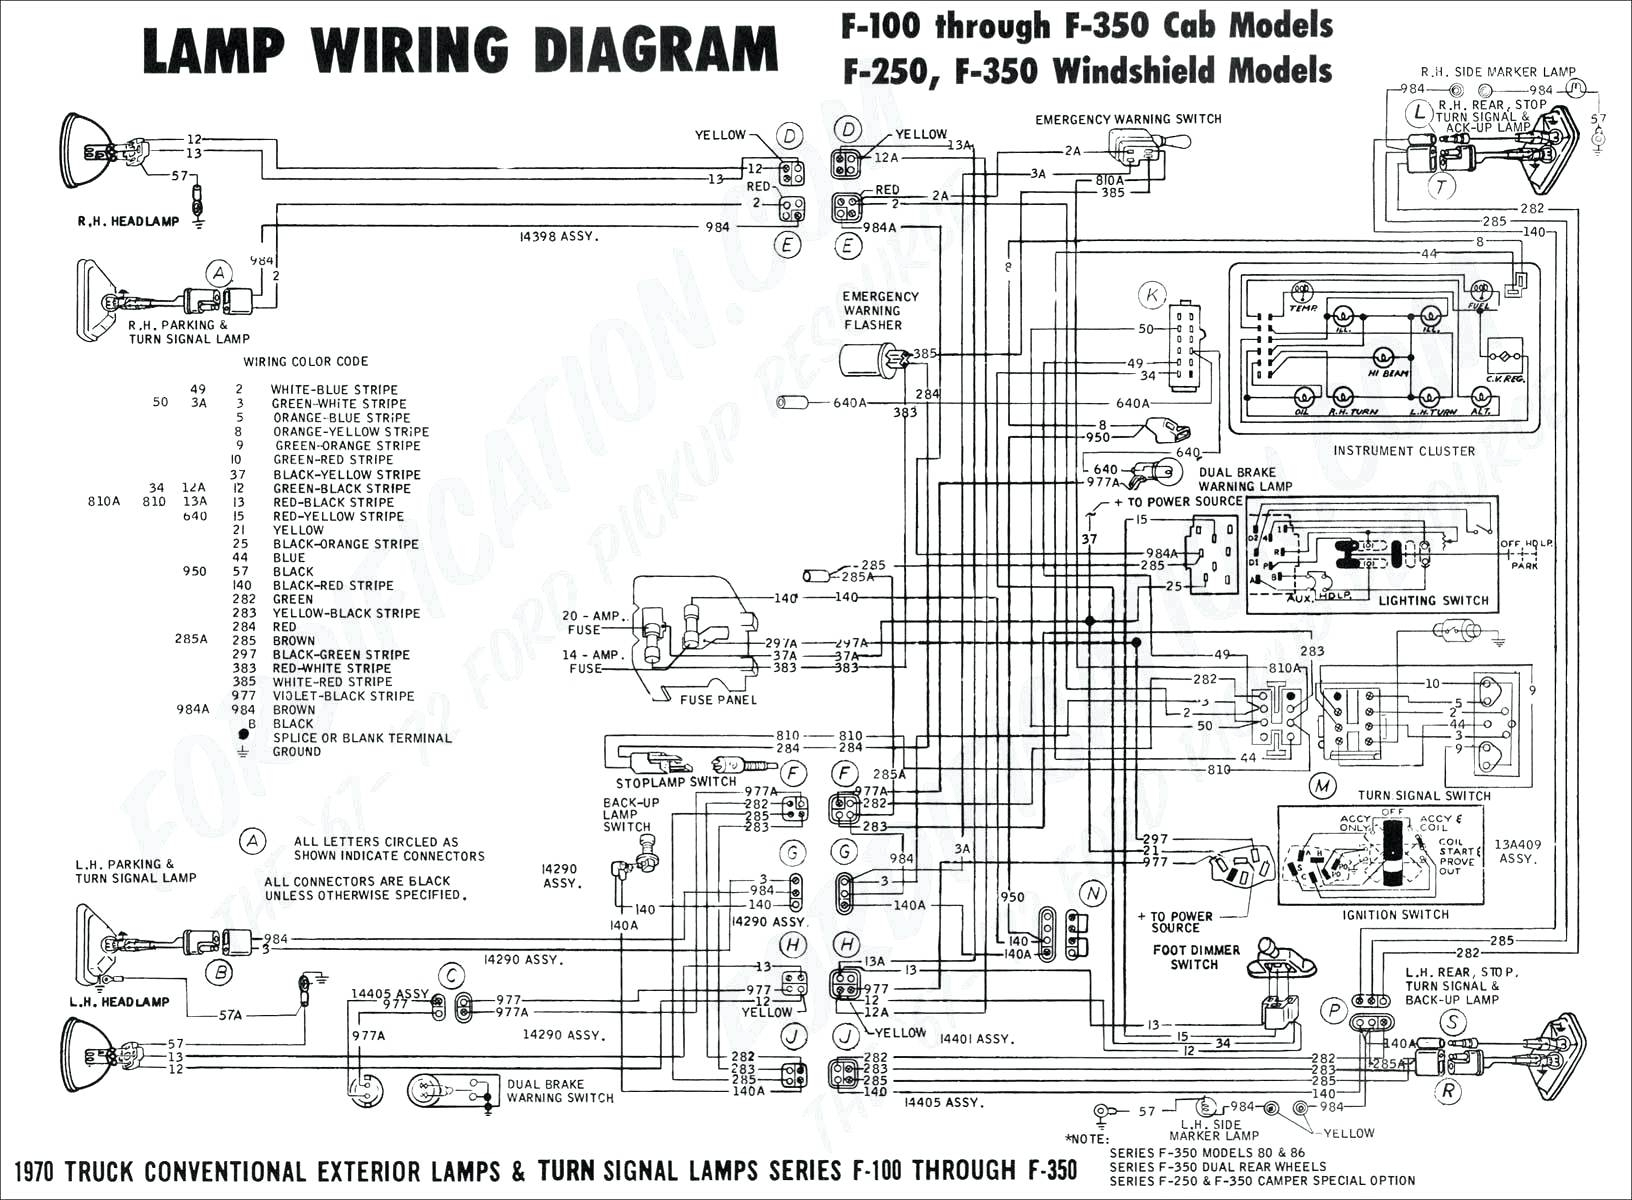 Ford F250 Trailer Wiring Harness Diagram | Free Wiring Diagram - F250 Trailer Wiring Diagram